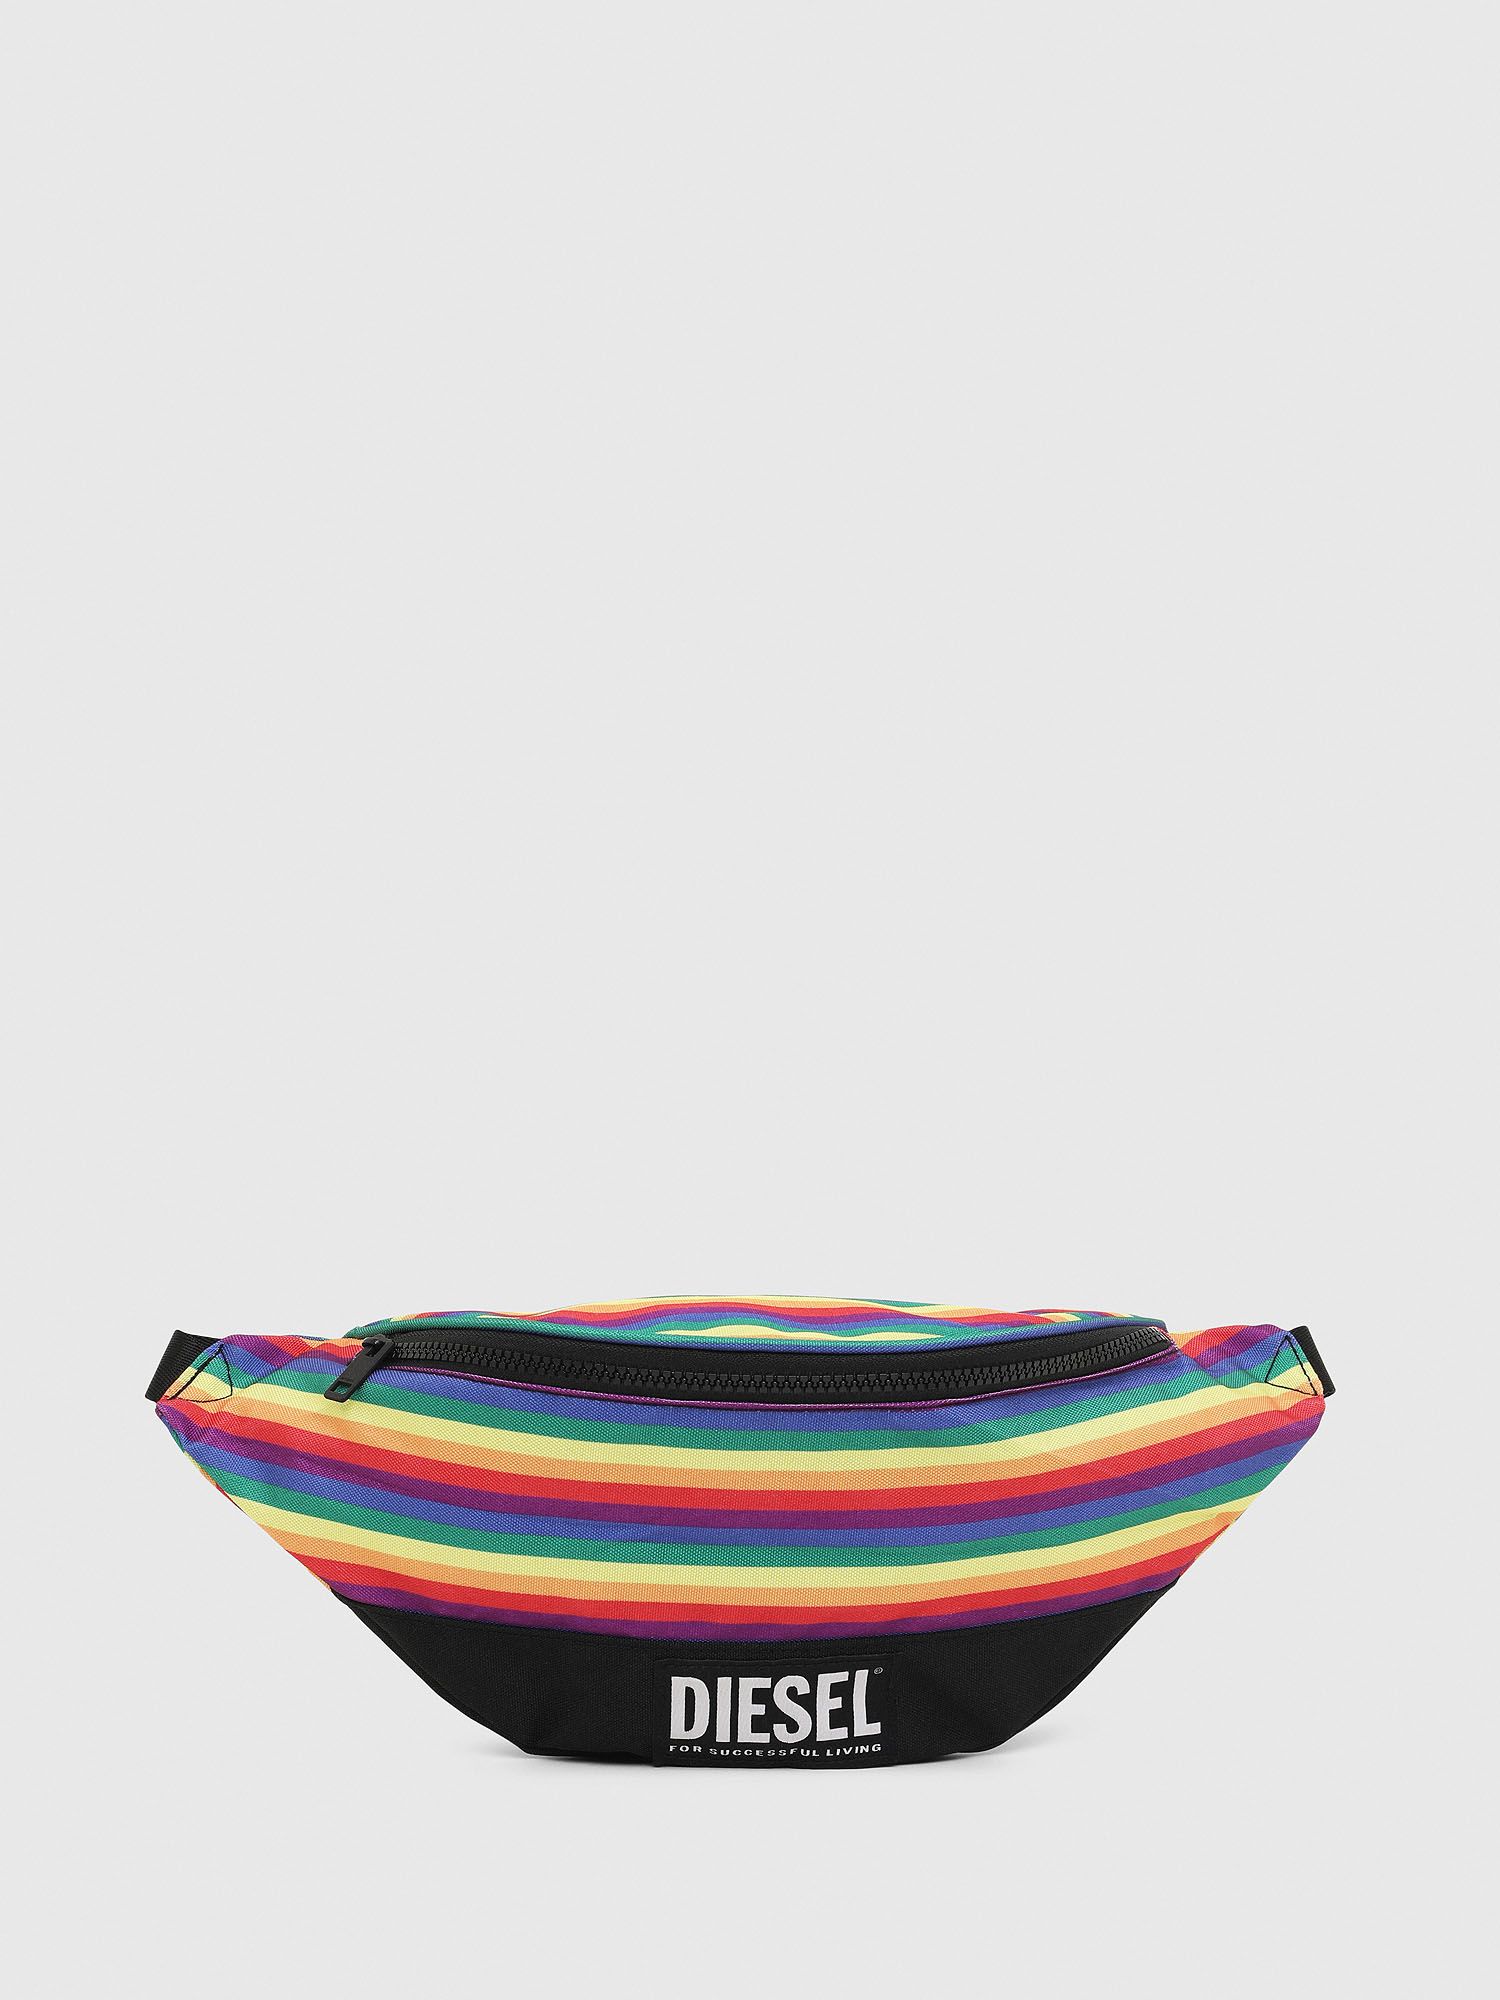 Diesel Beachwear accessories 0LAXS - Multicolor